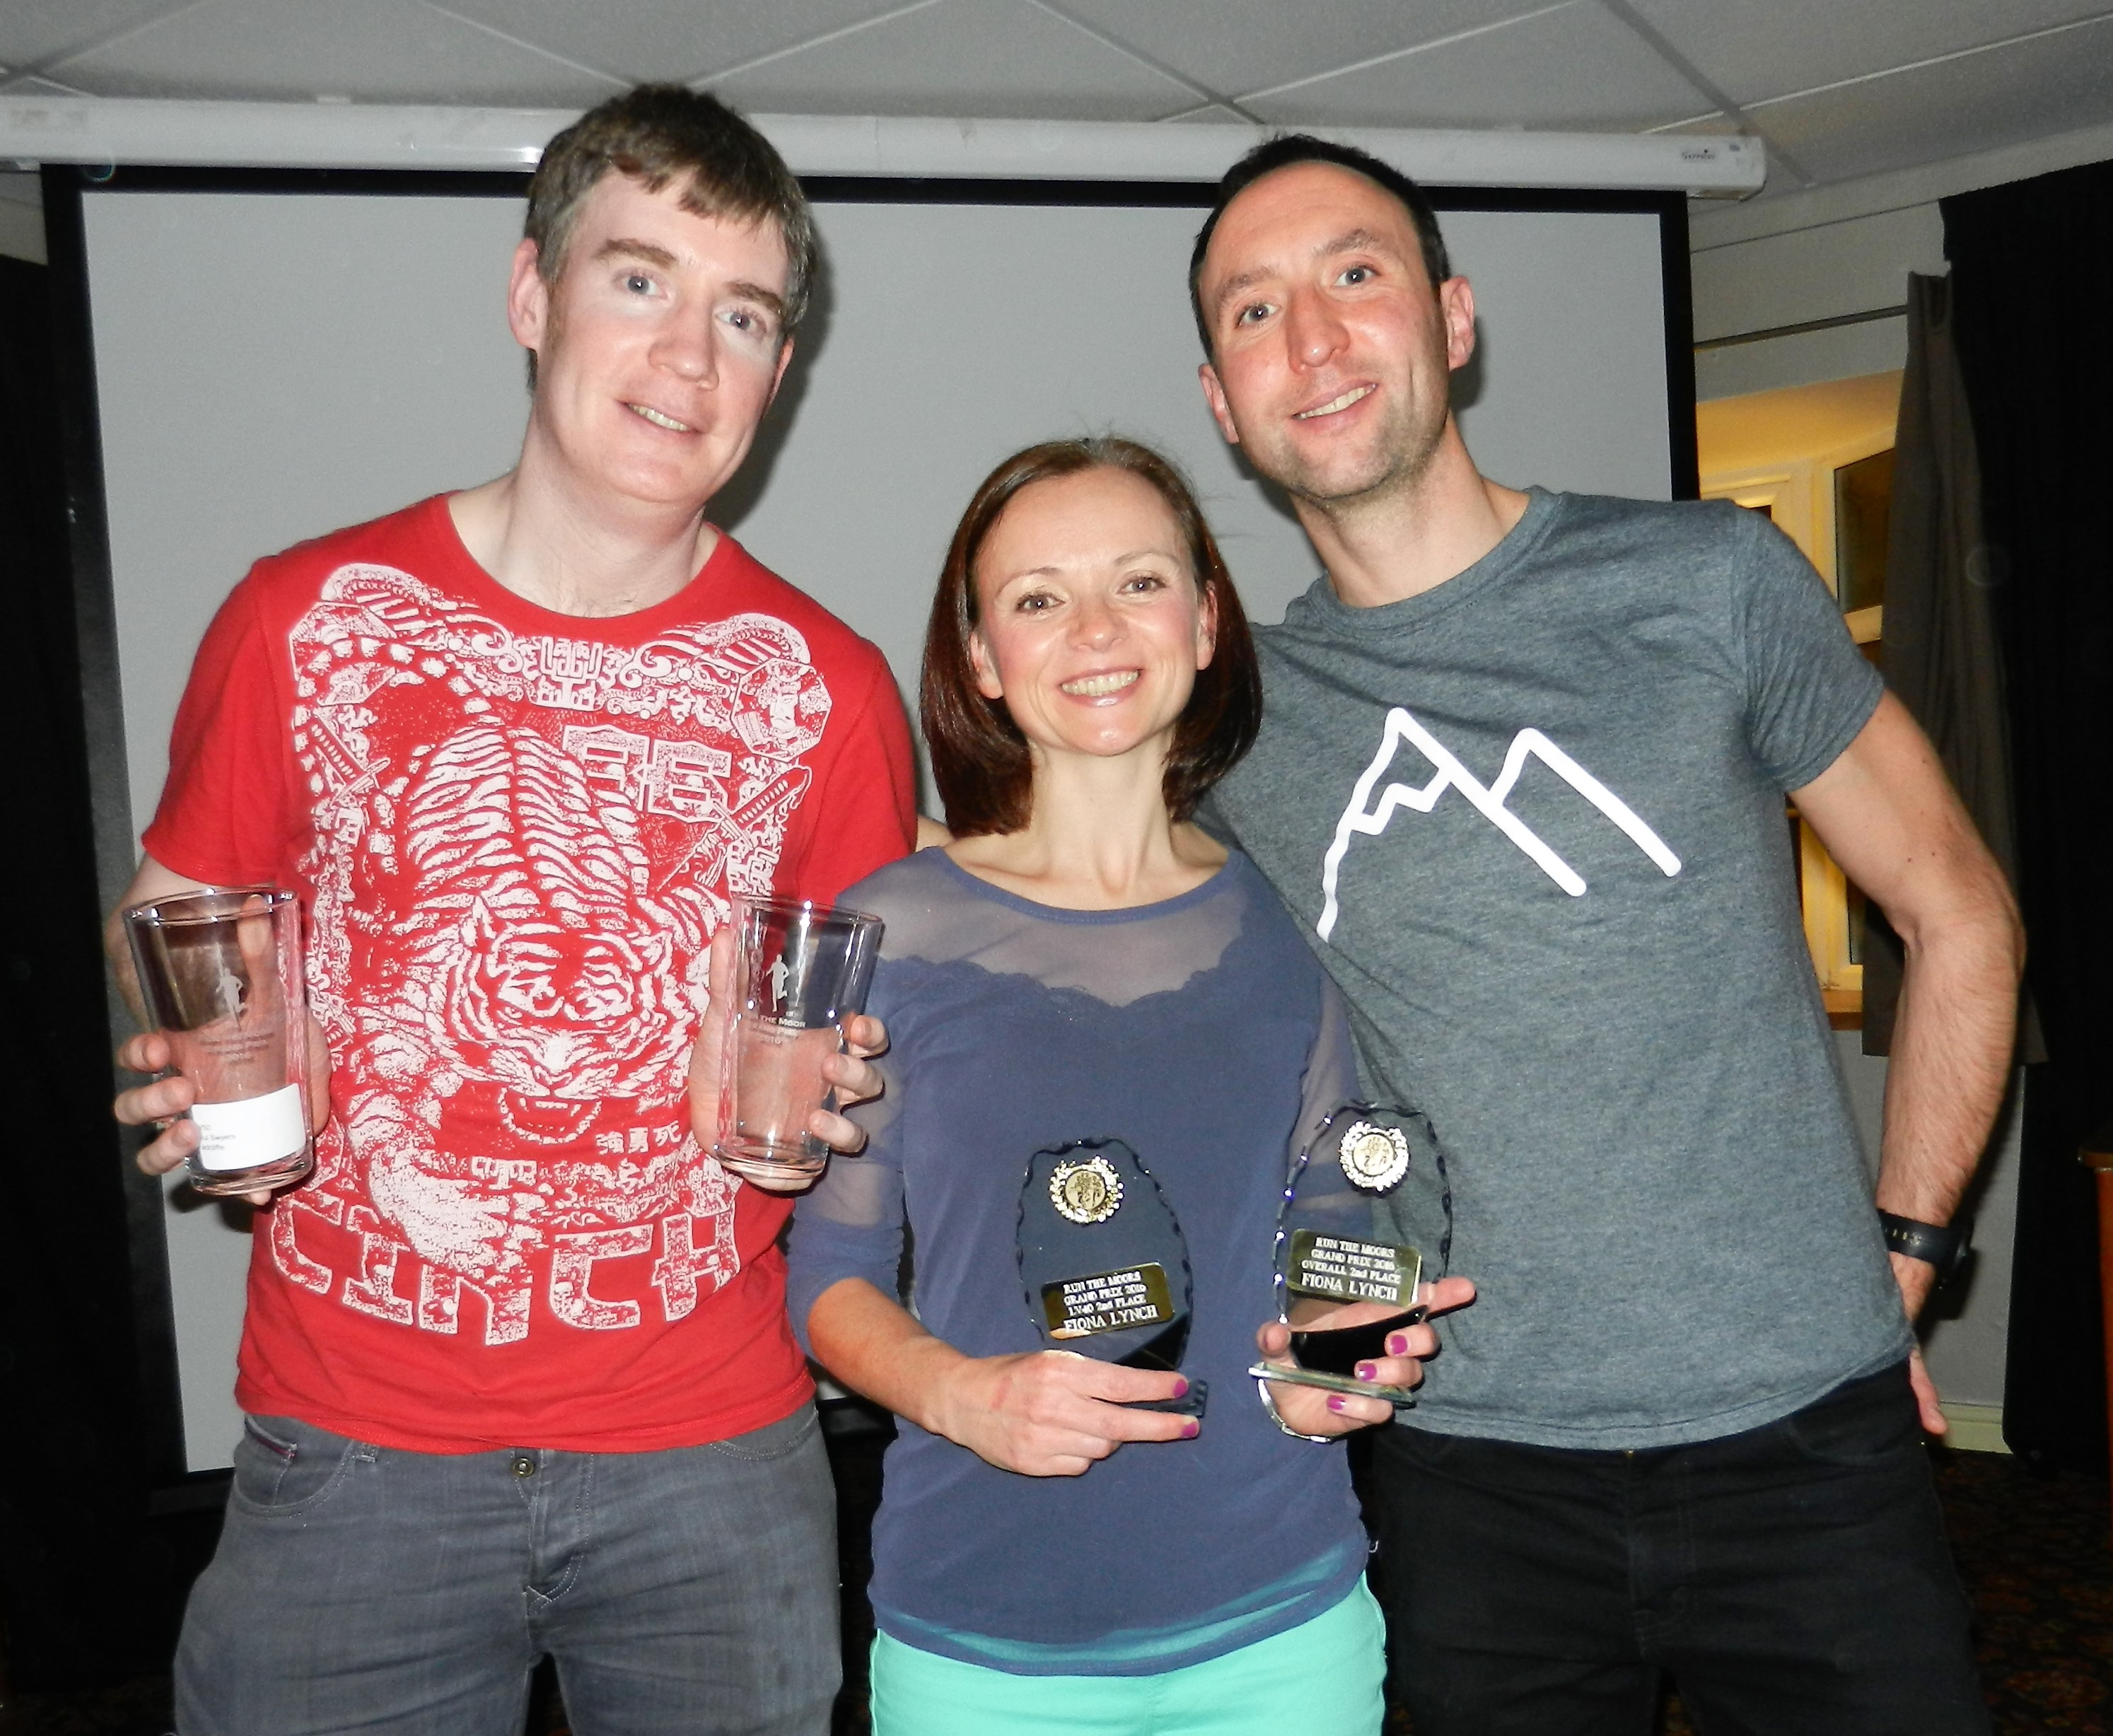 Chris, Fiona and speaker Ben Mounsey at the Grand Prix presentation.